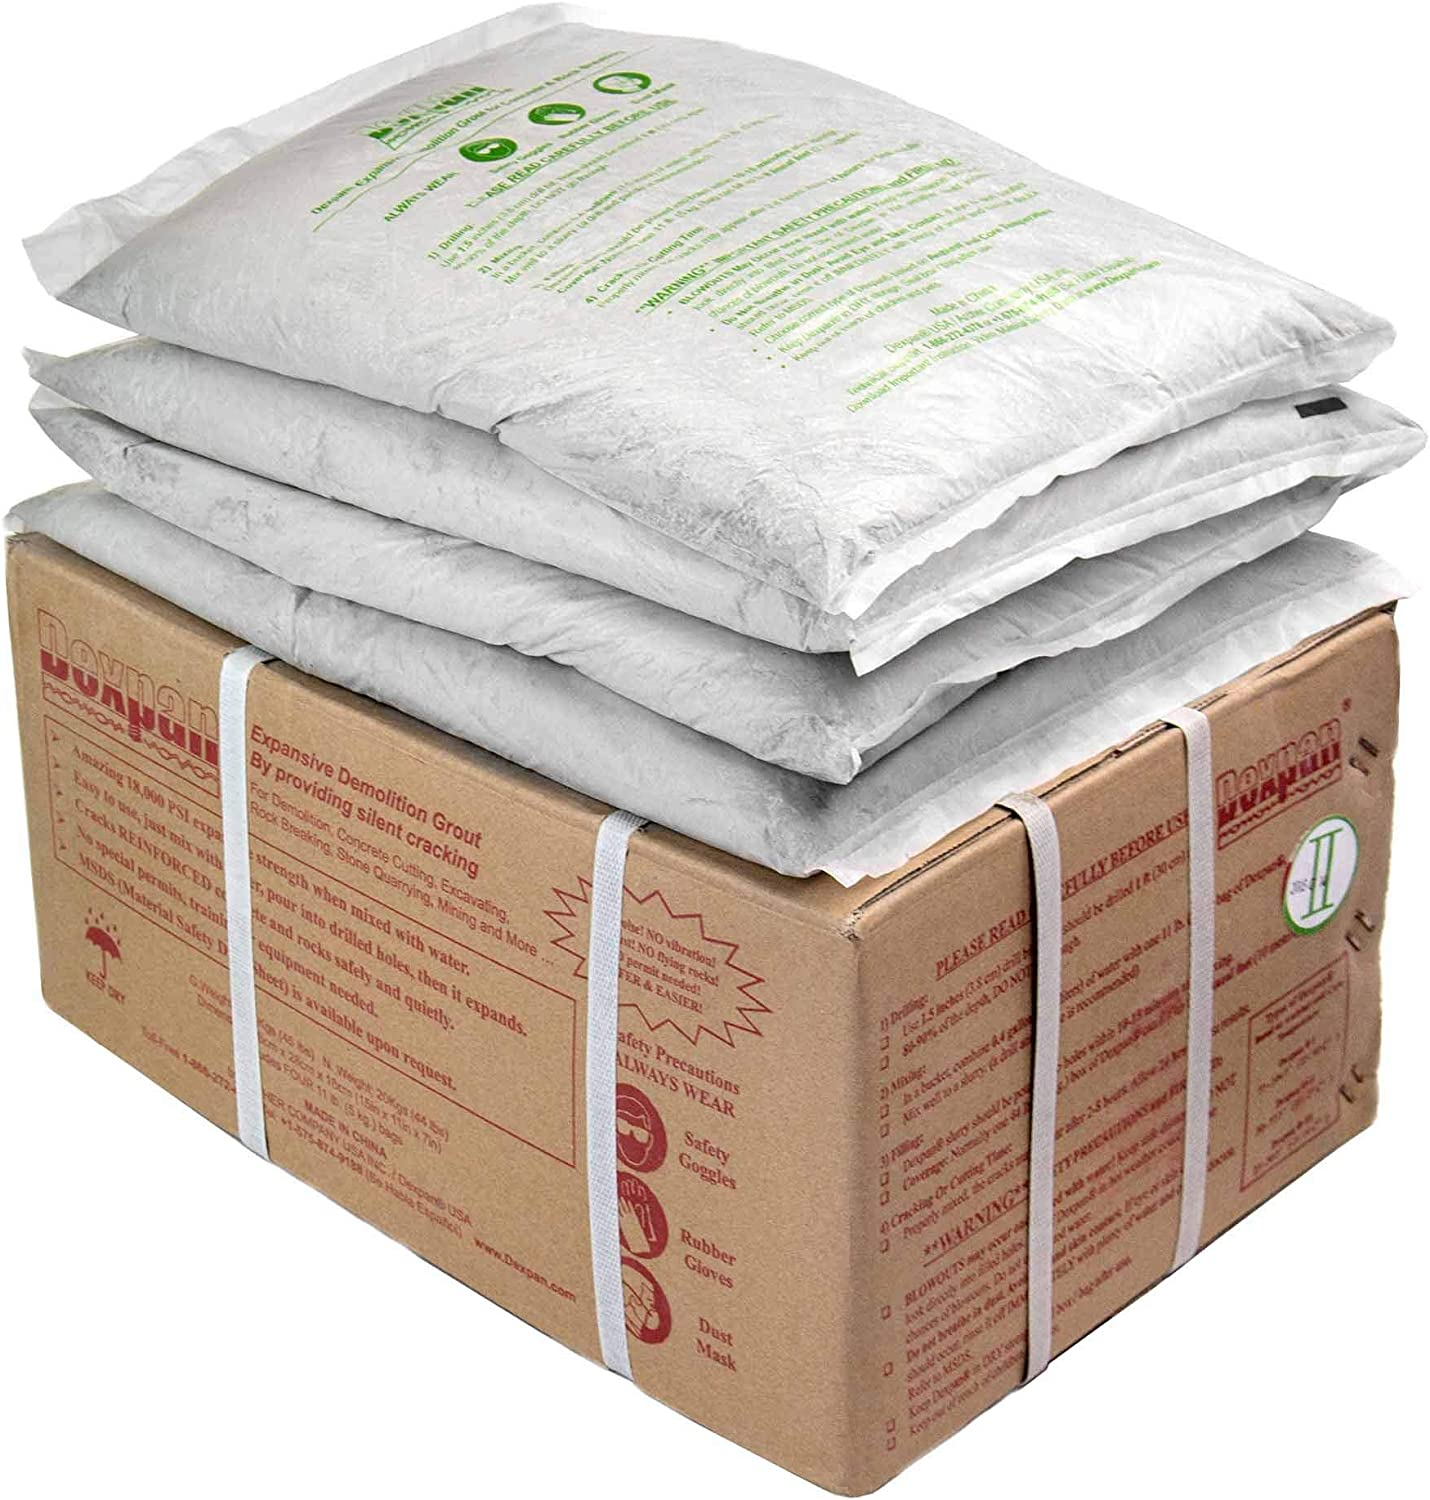 Dexpan Expansive Demolition Opening large release sale Grout 44 Lb. Breaking for Clearance SALE Limited time Rock Box